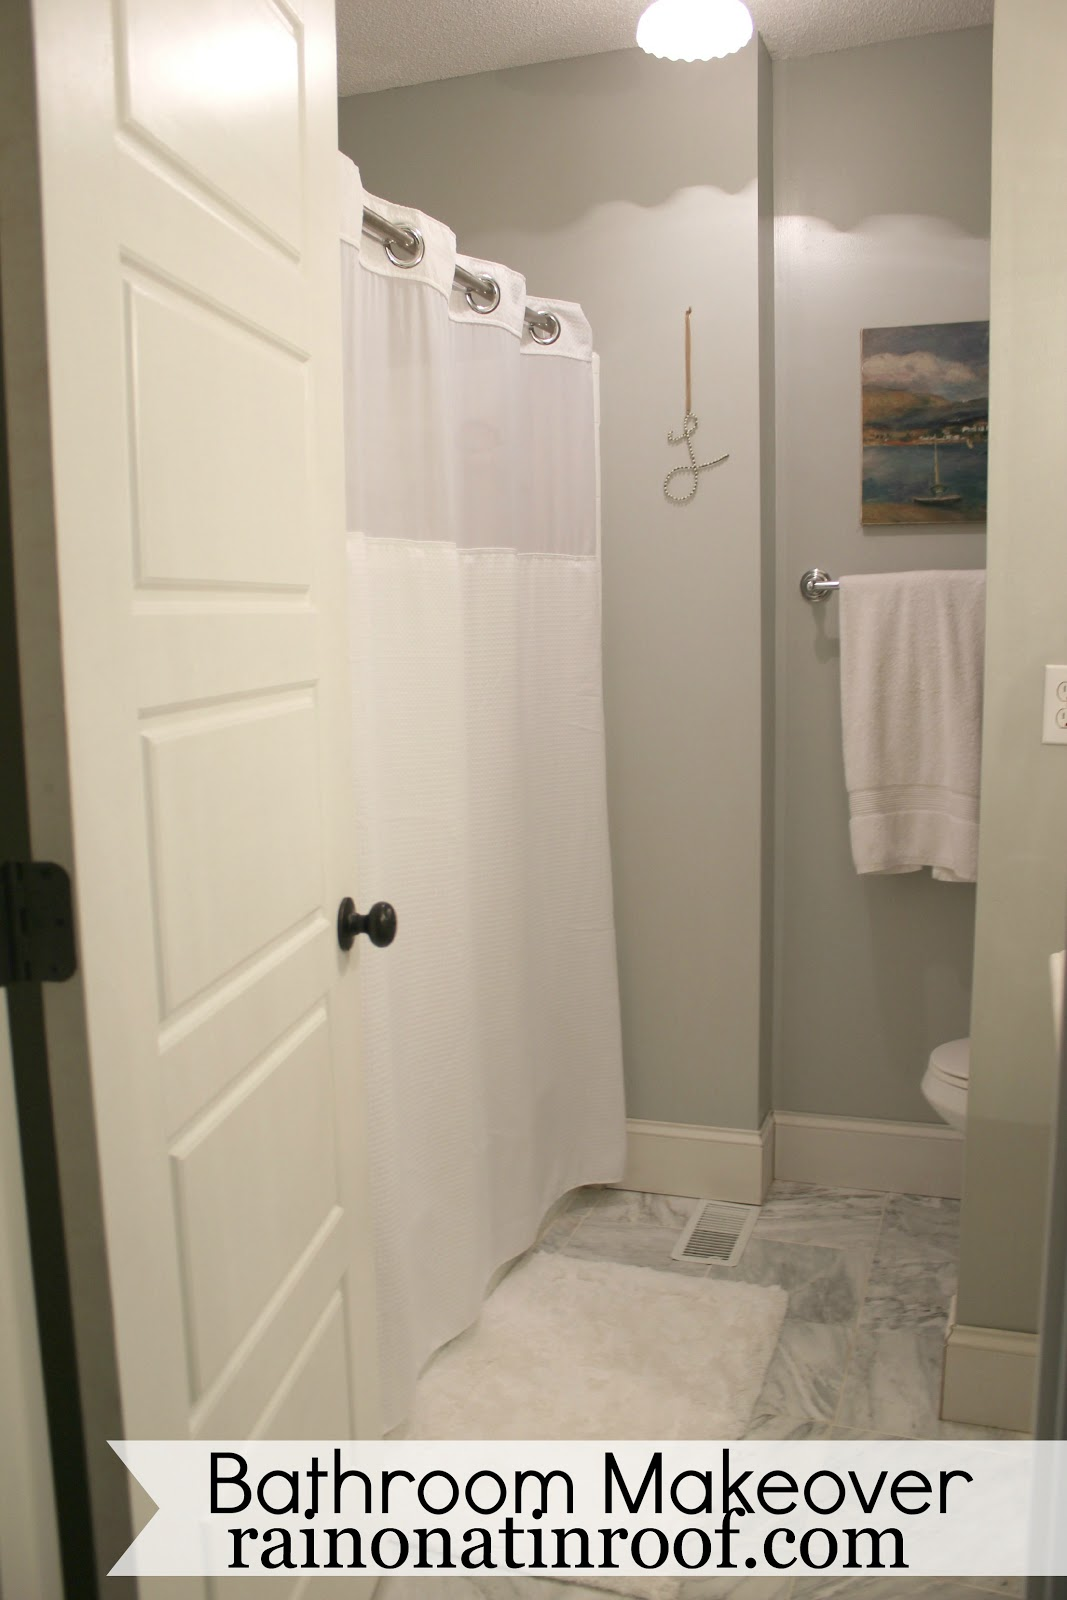 Bathroom Renovation on a Budget